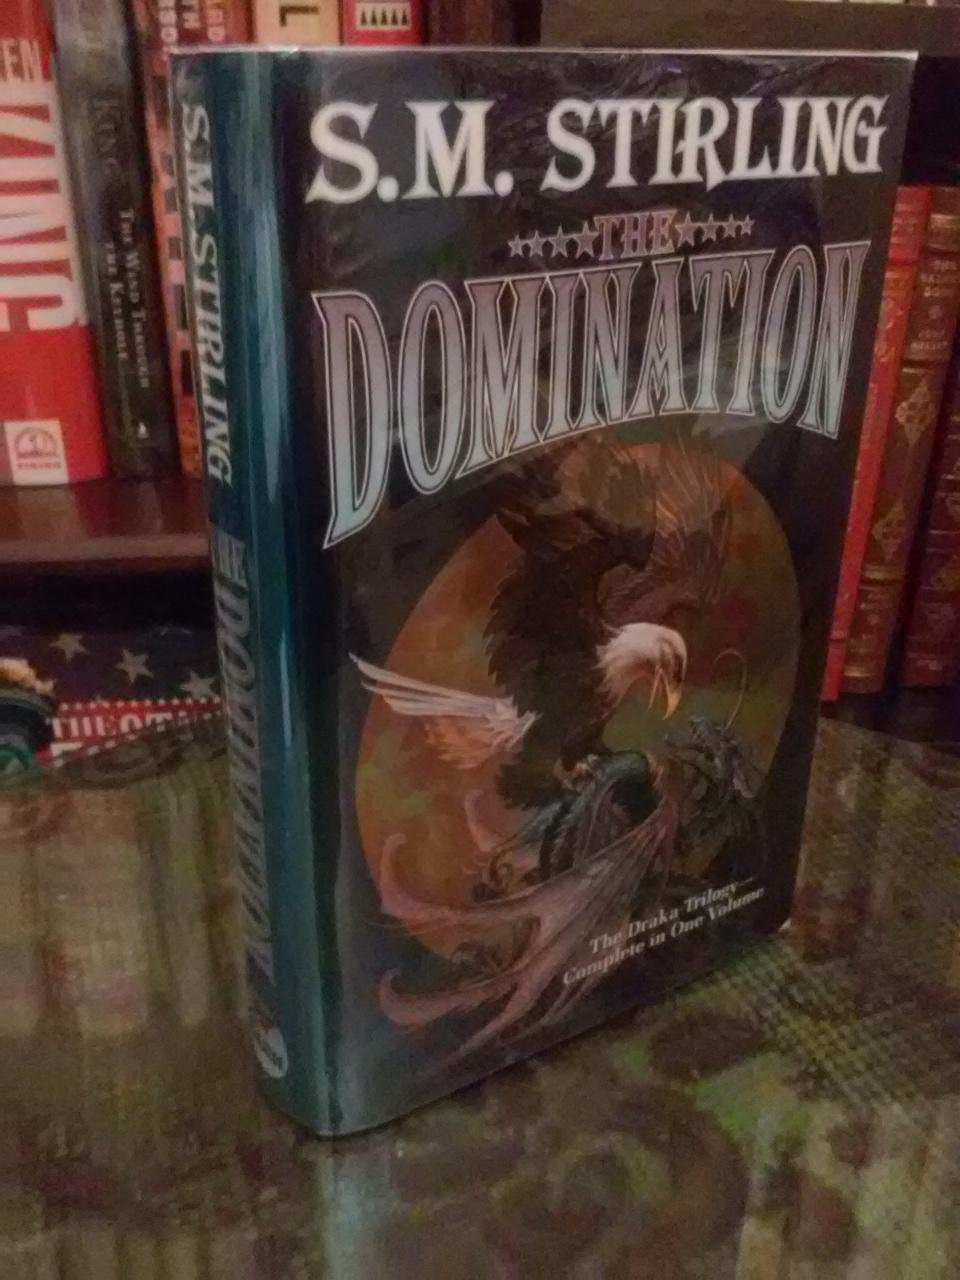 The Domination: The Draka Trilogy Complete in One Volume